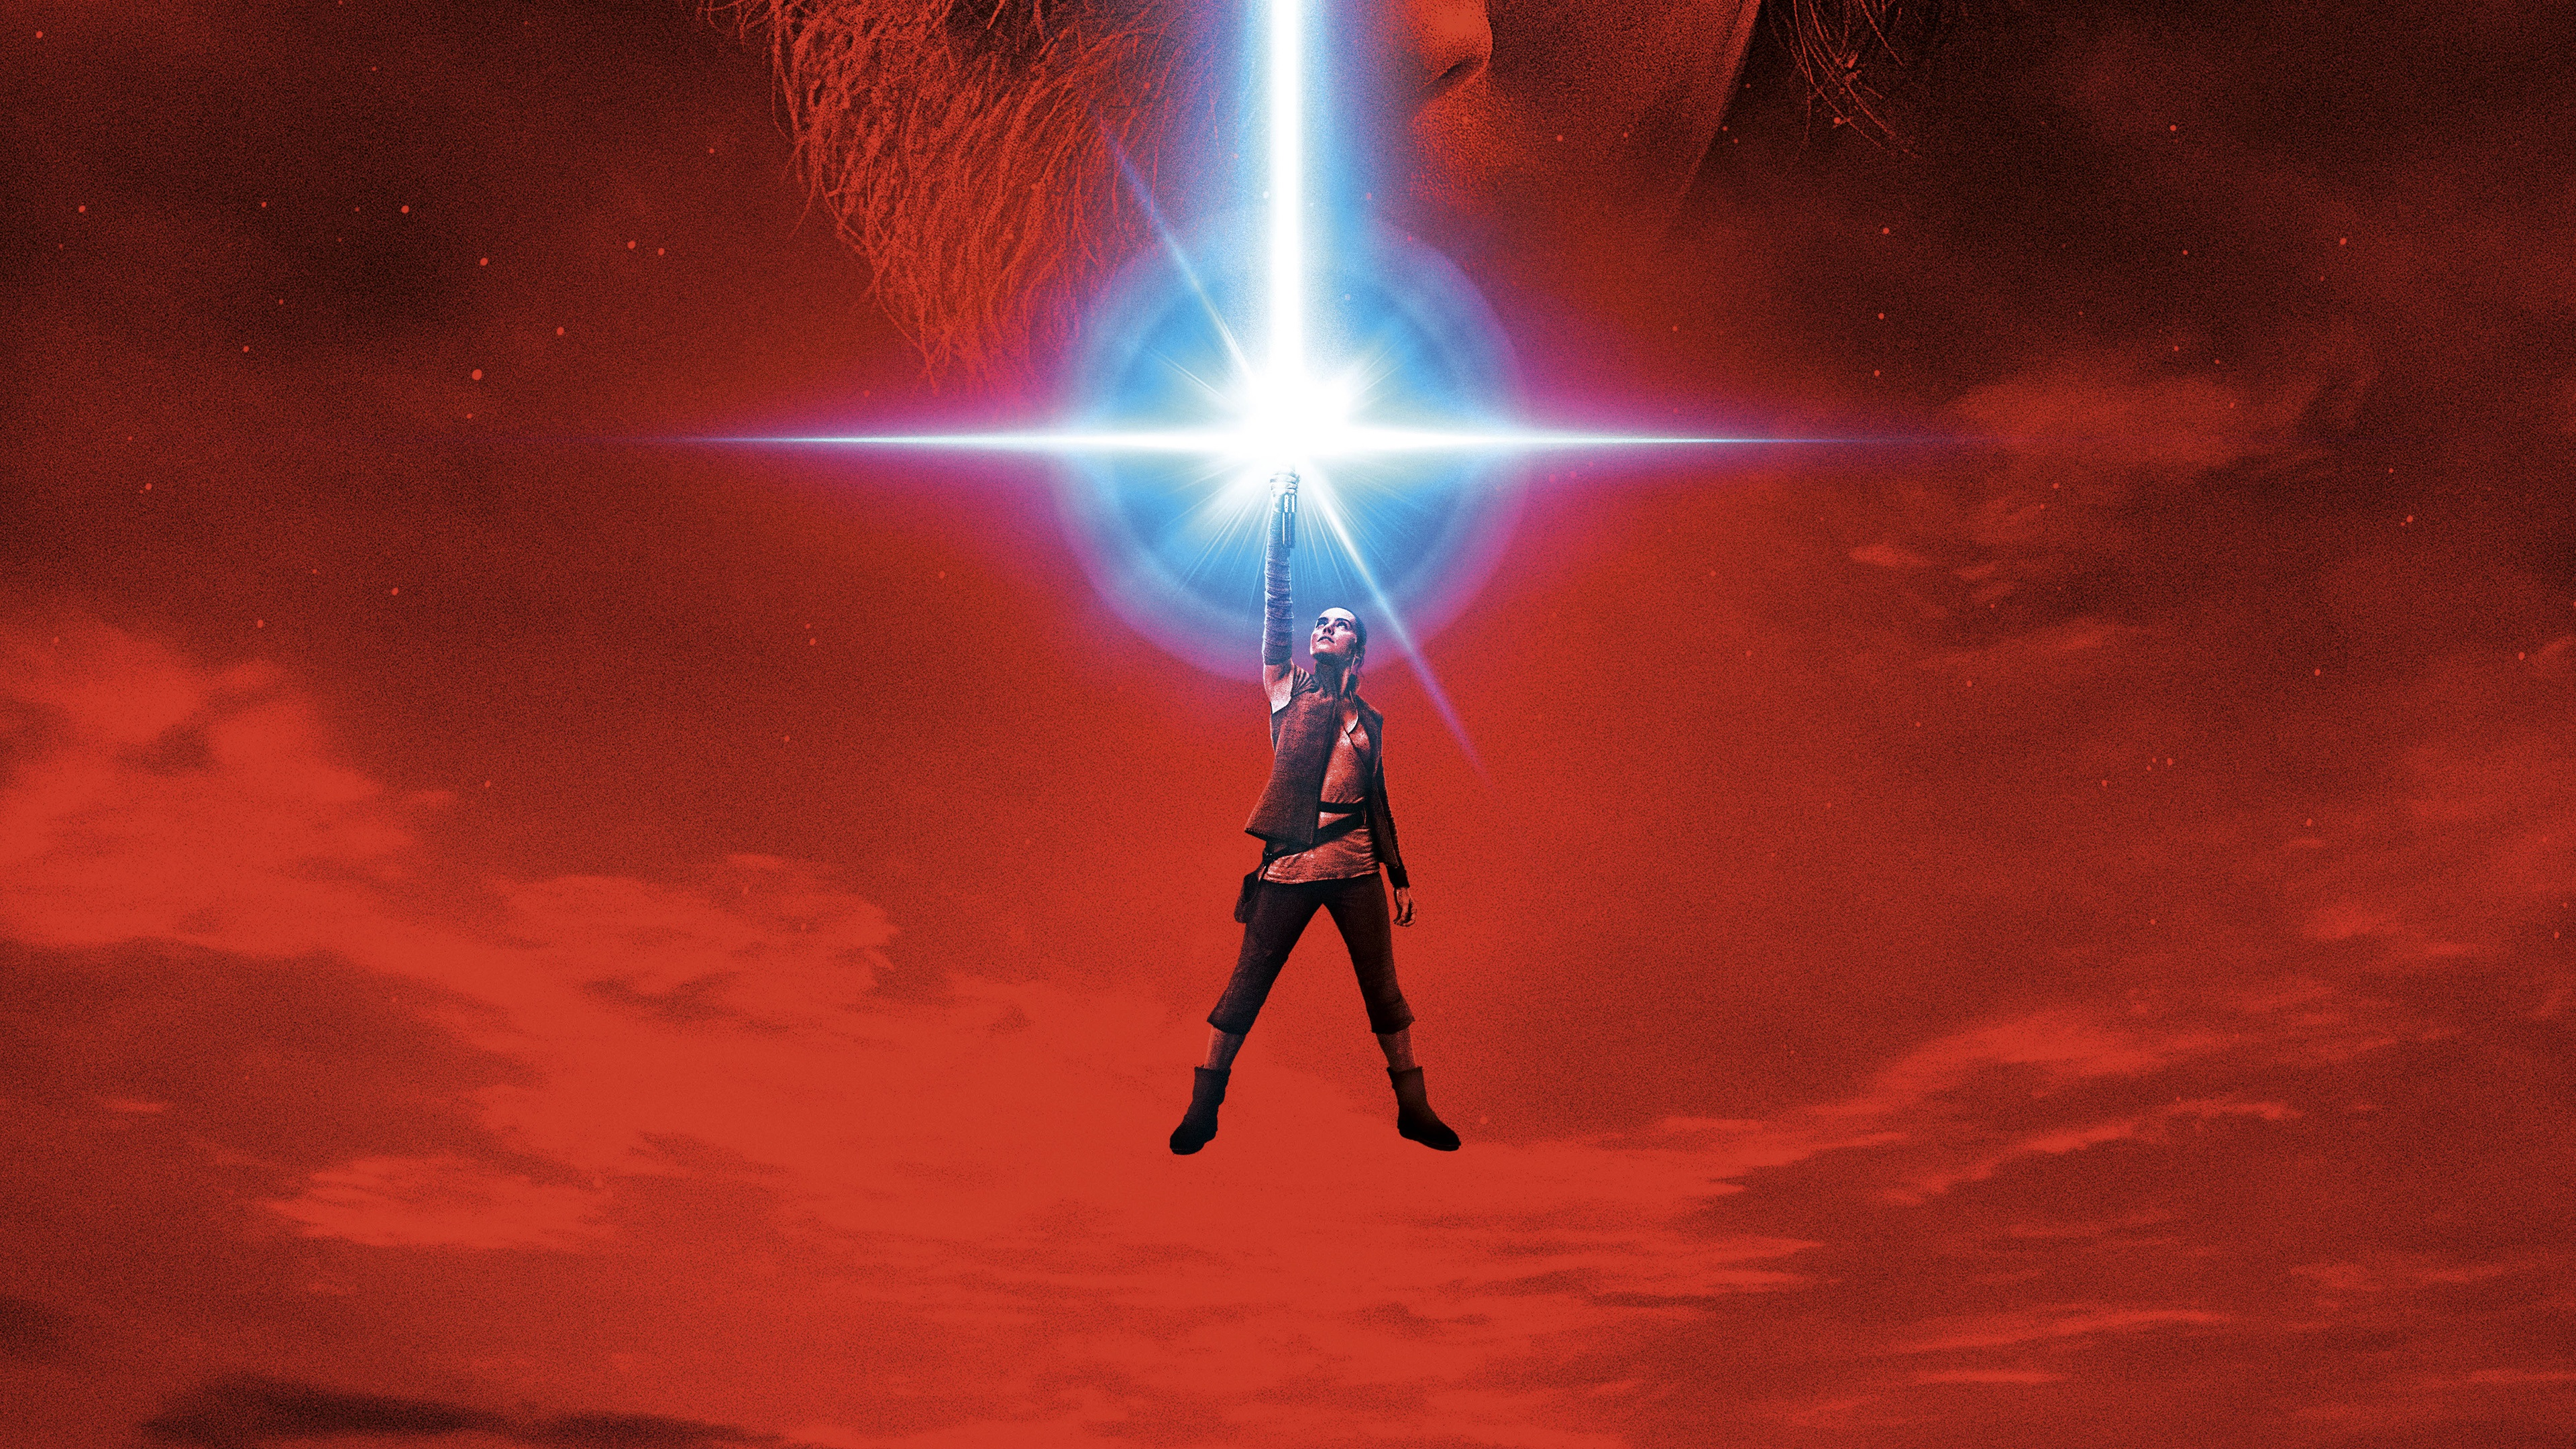 Wallpaper Star Wars The Last Jedi 3840x2160 Uhd 4k Picture Image